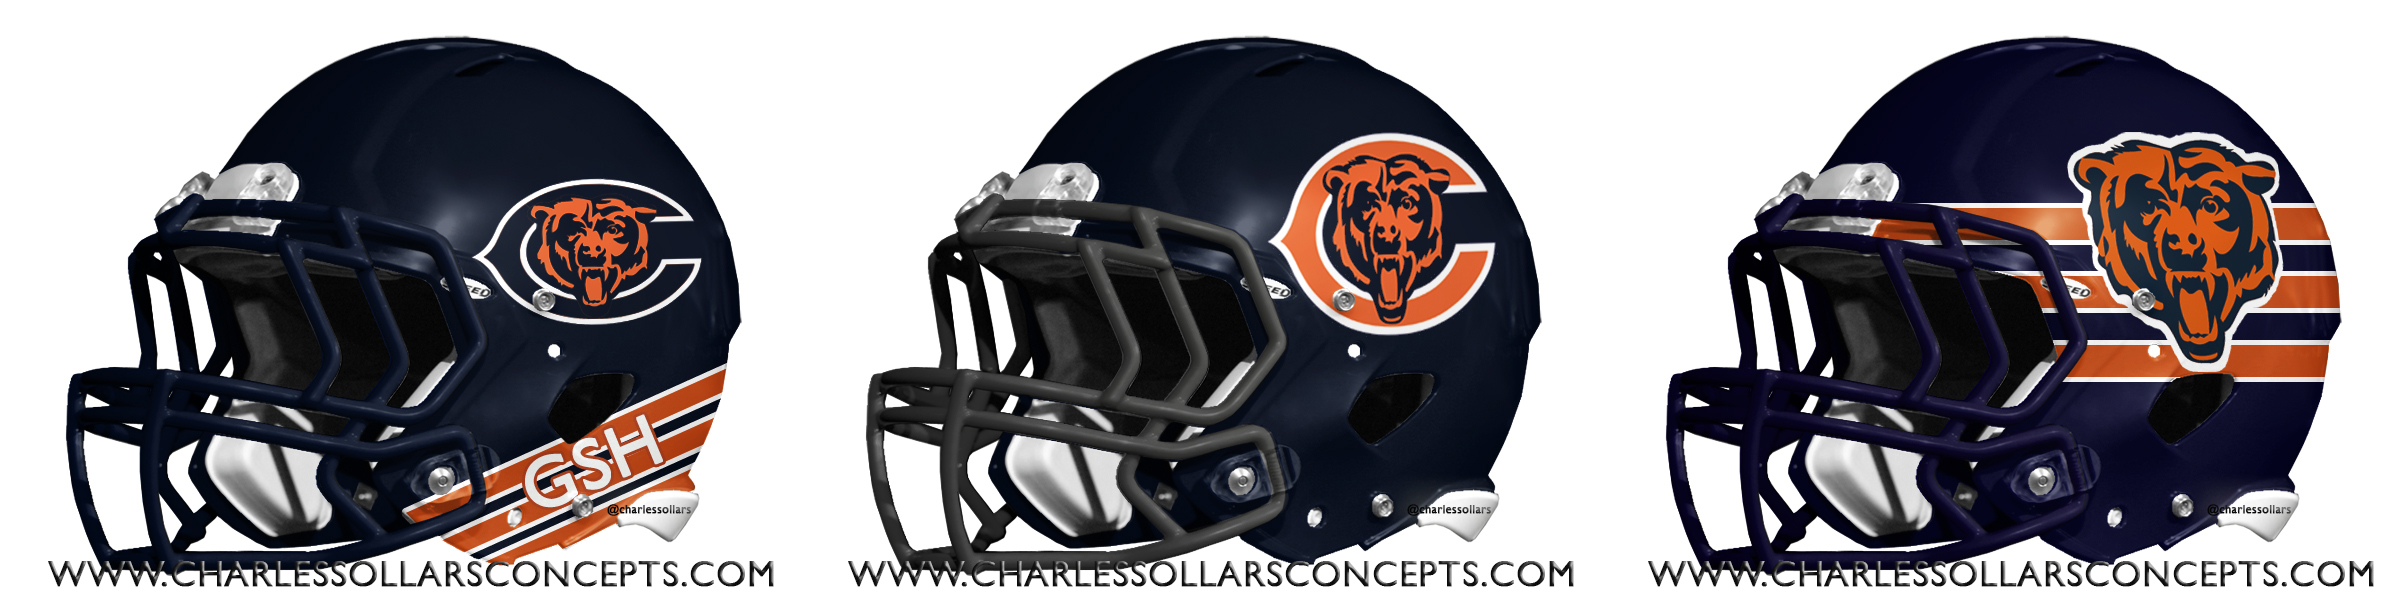 bears helmet coloring pages - photo#35